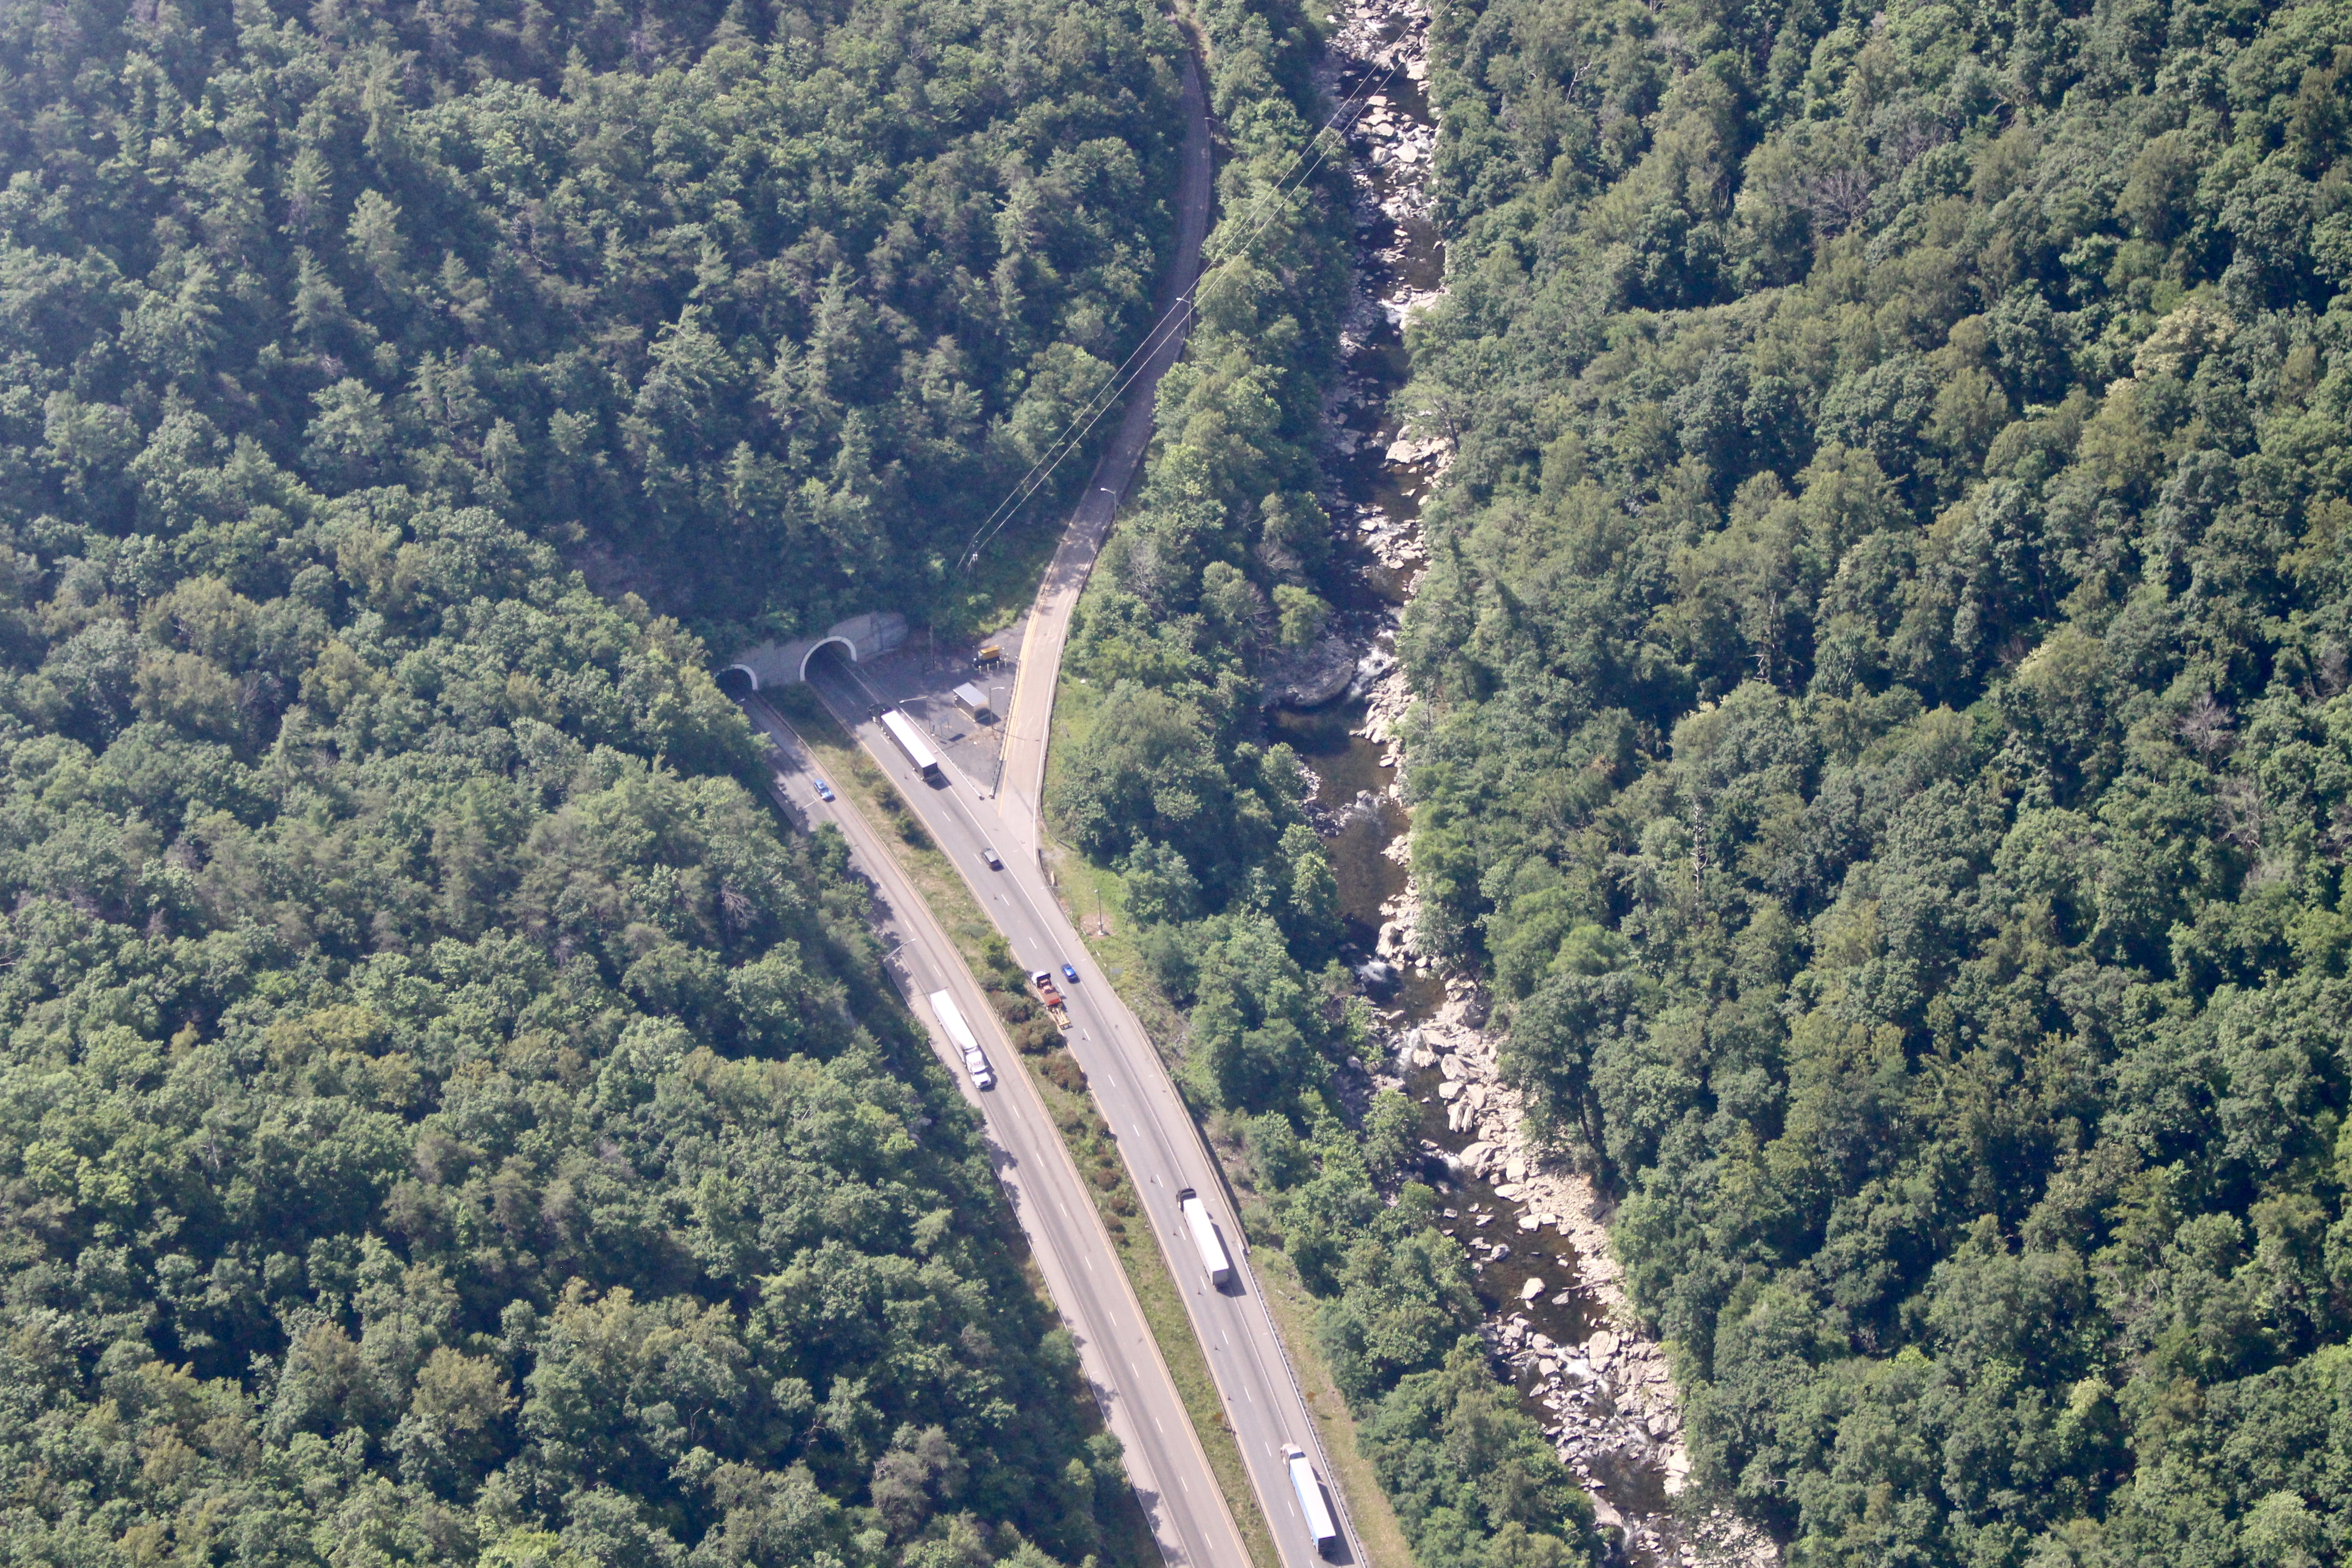 Road Ecology Comes to Southern Appalachia